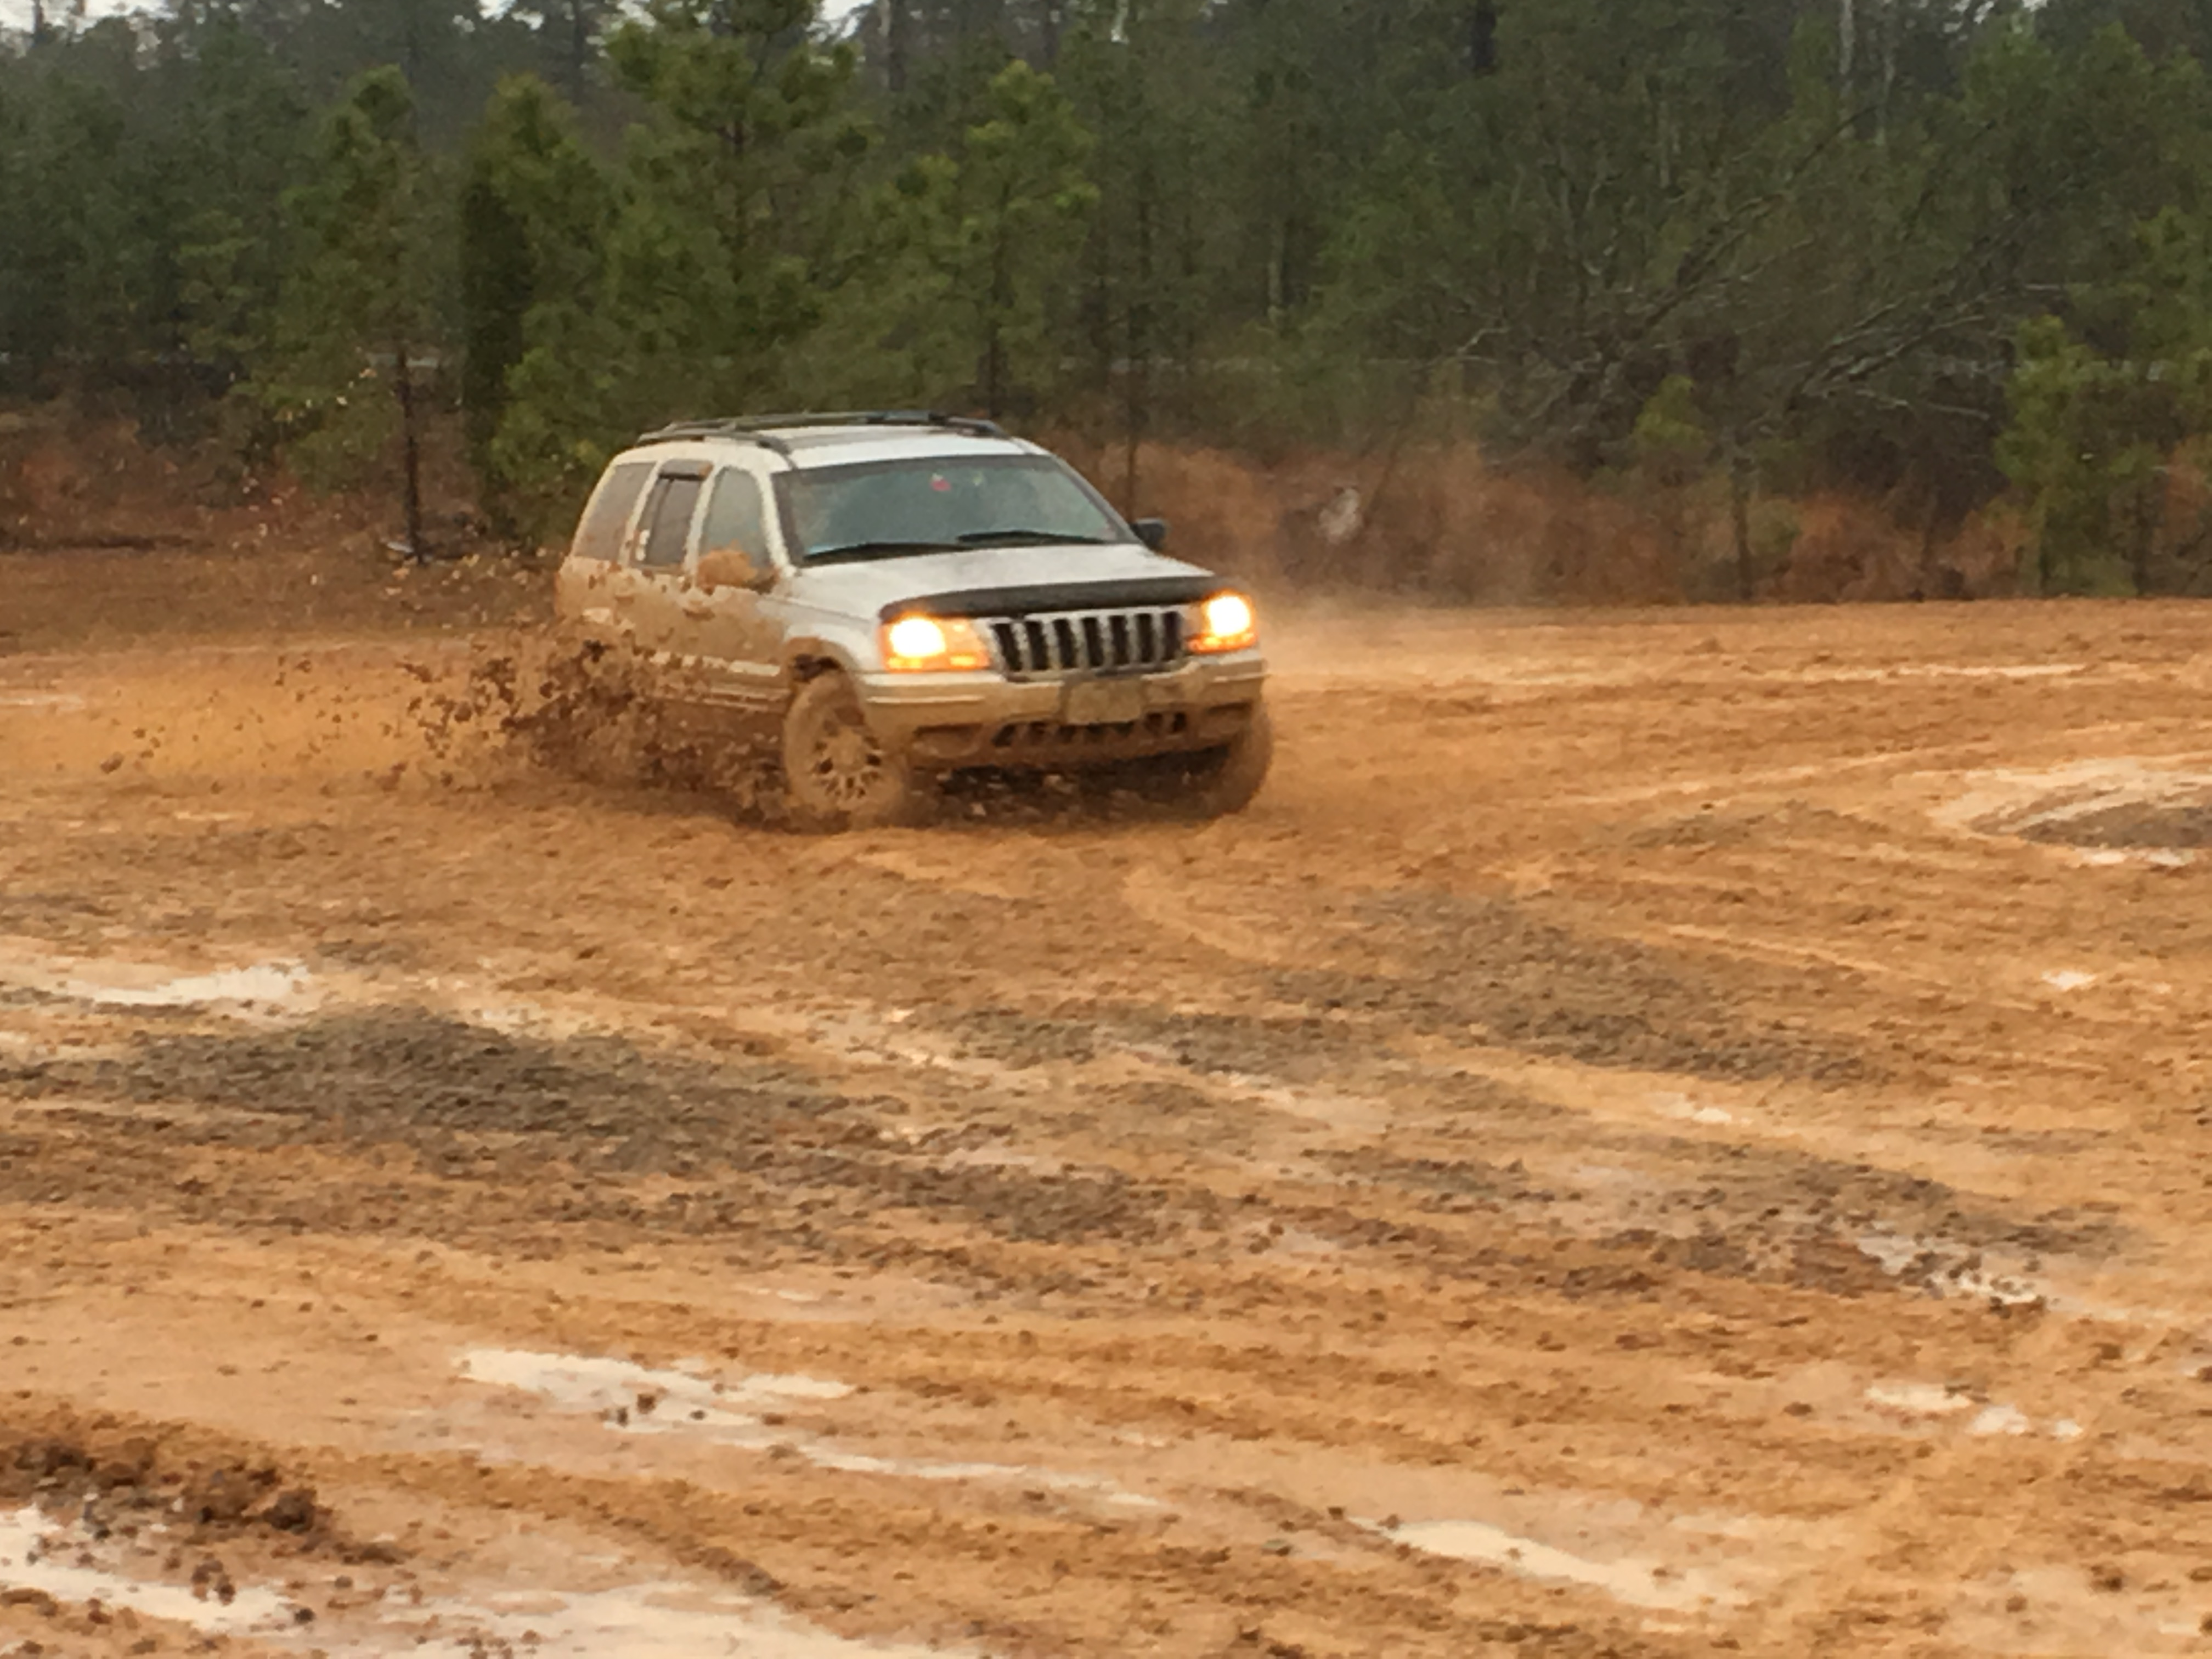 Older SUV in the mud ...